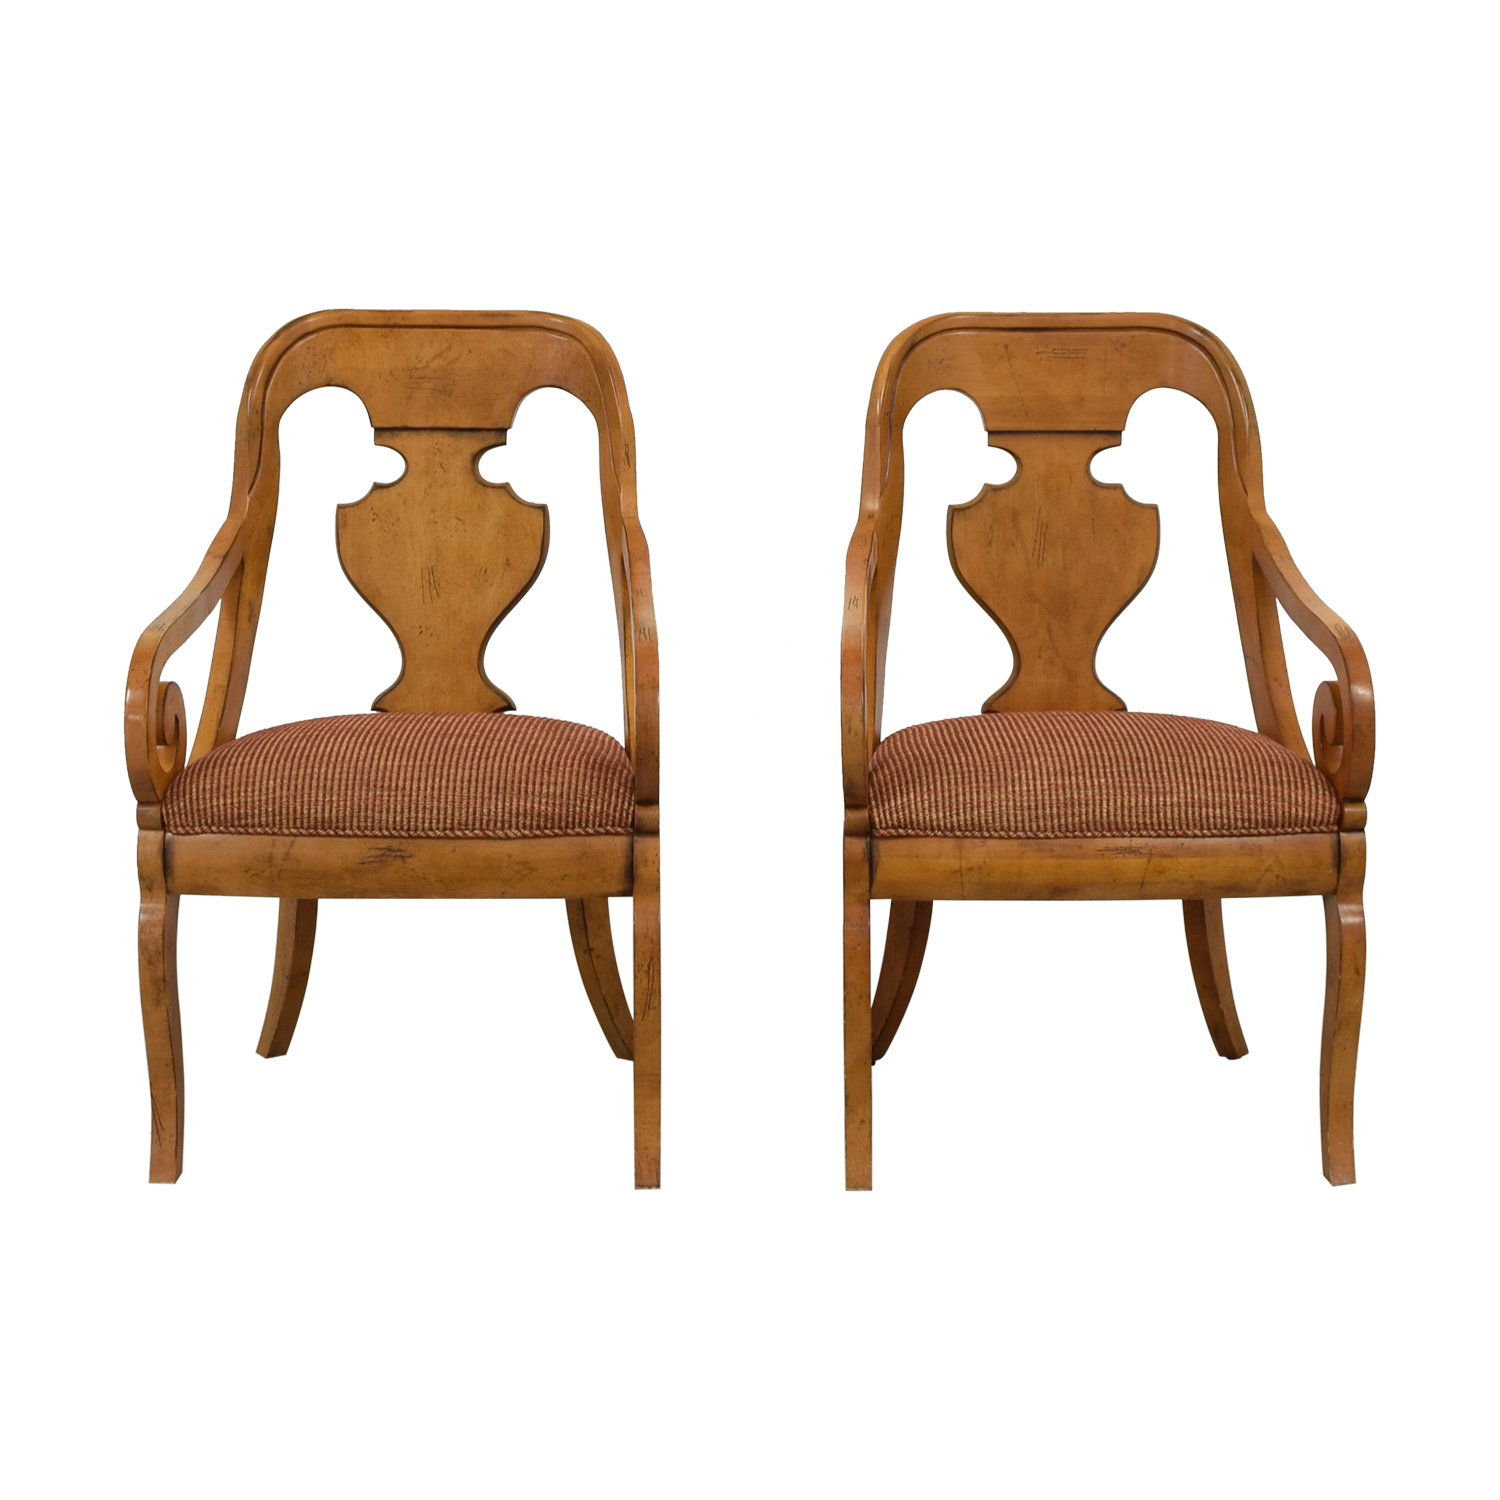 shop Lillian August Upholstered Side Chairs Lillian August Chairs